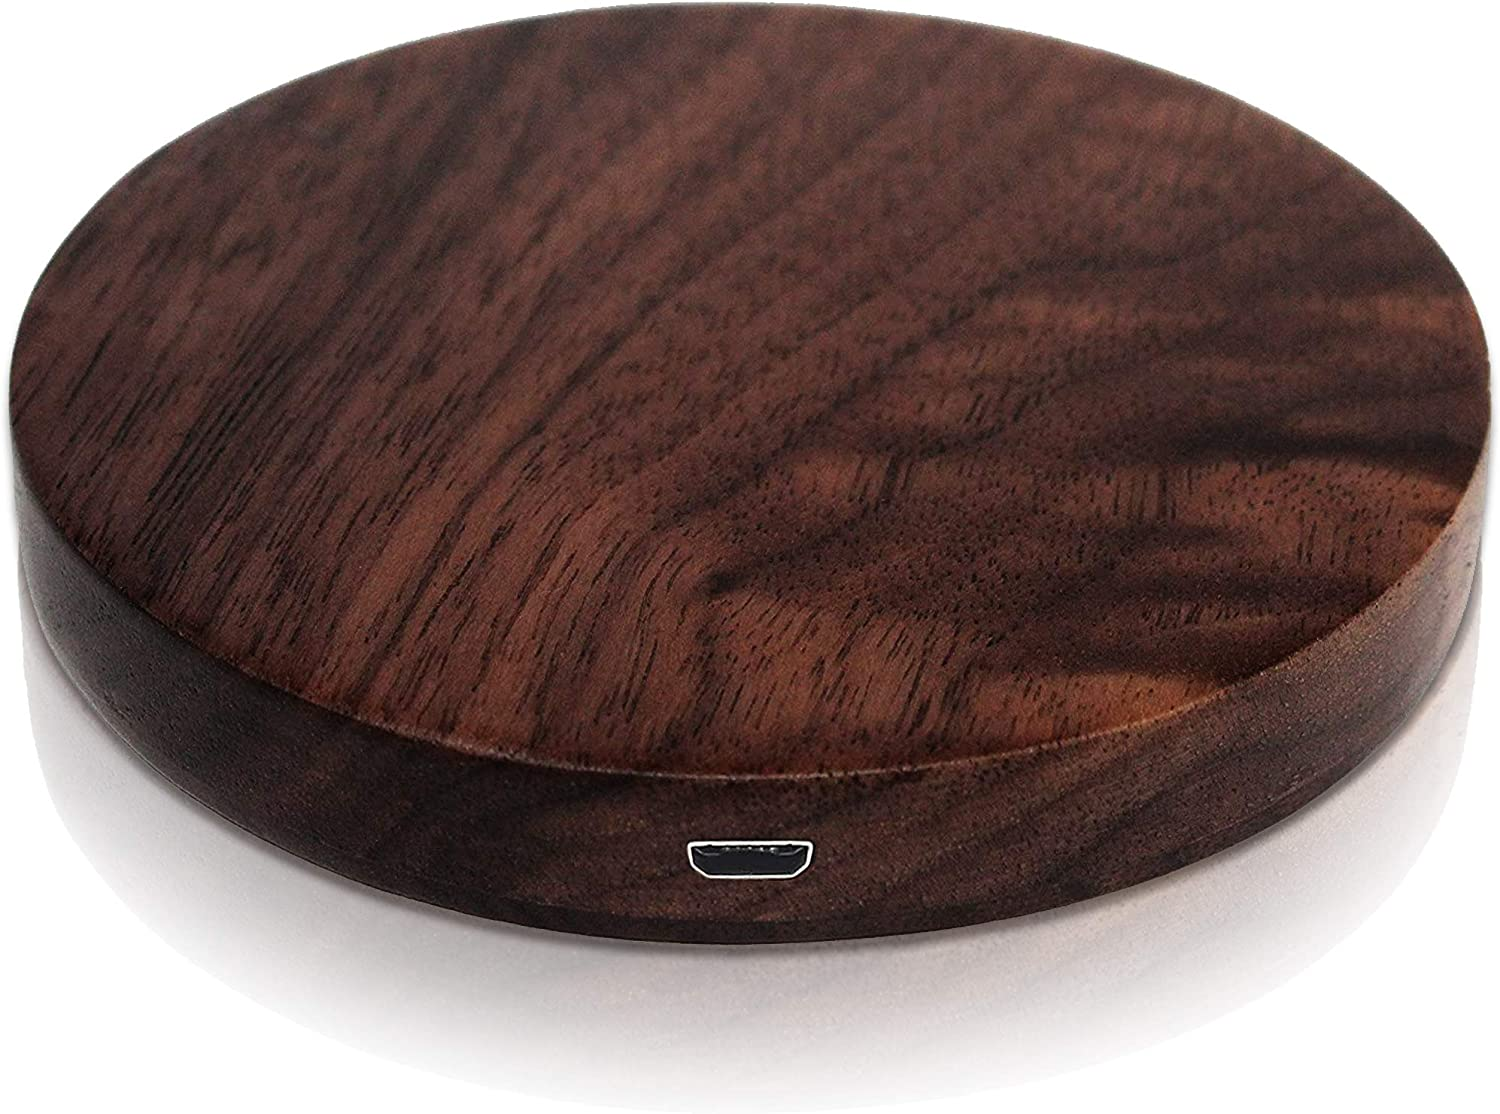 Compatible with iPhone Samsung Google Handcrafted modern gift for him or her Spalted hornbeam Wooden QI 15w Fast Wireless Charger station